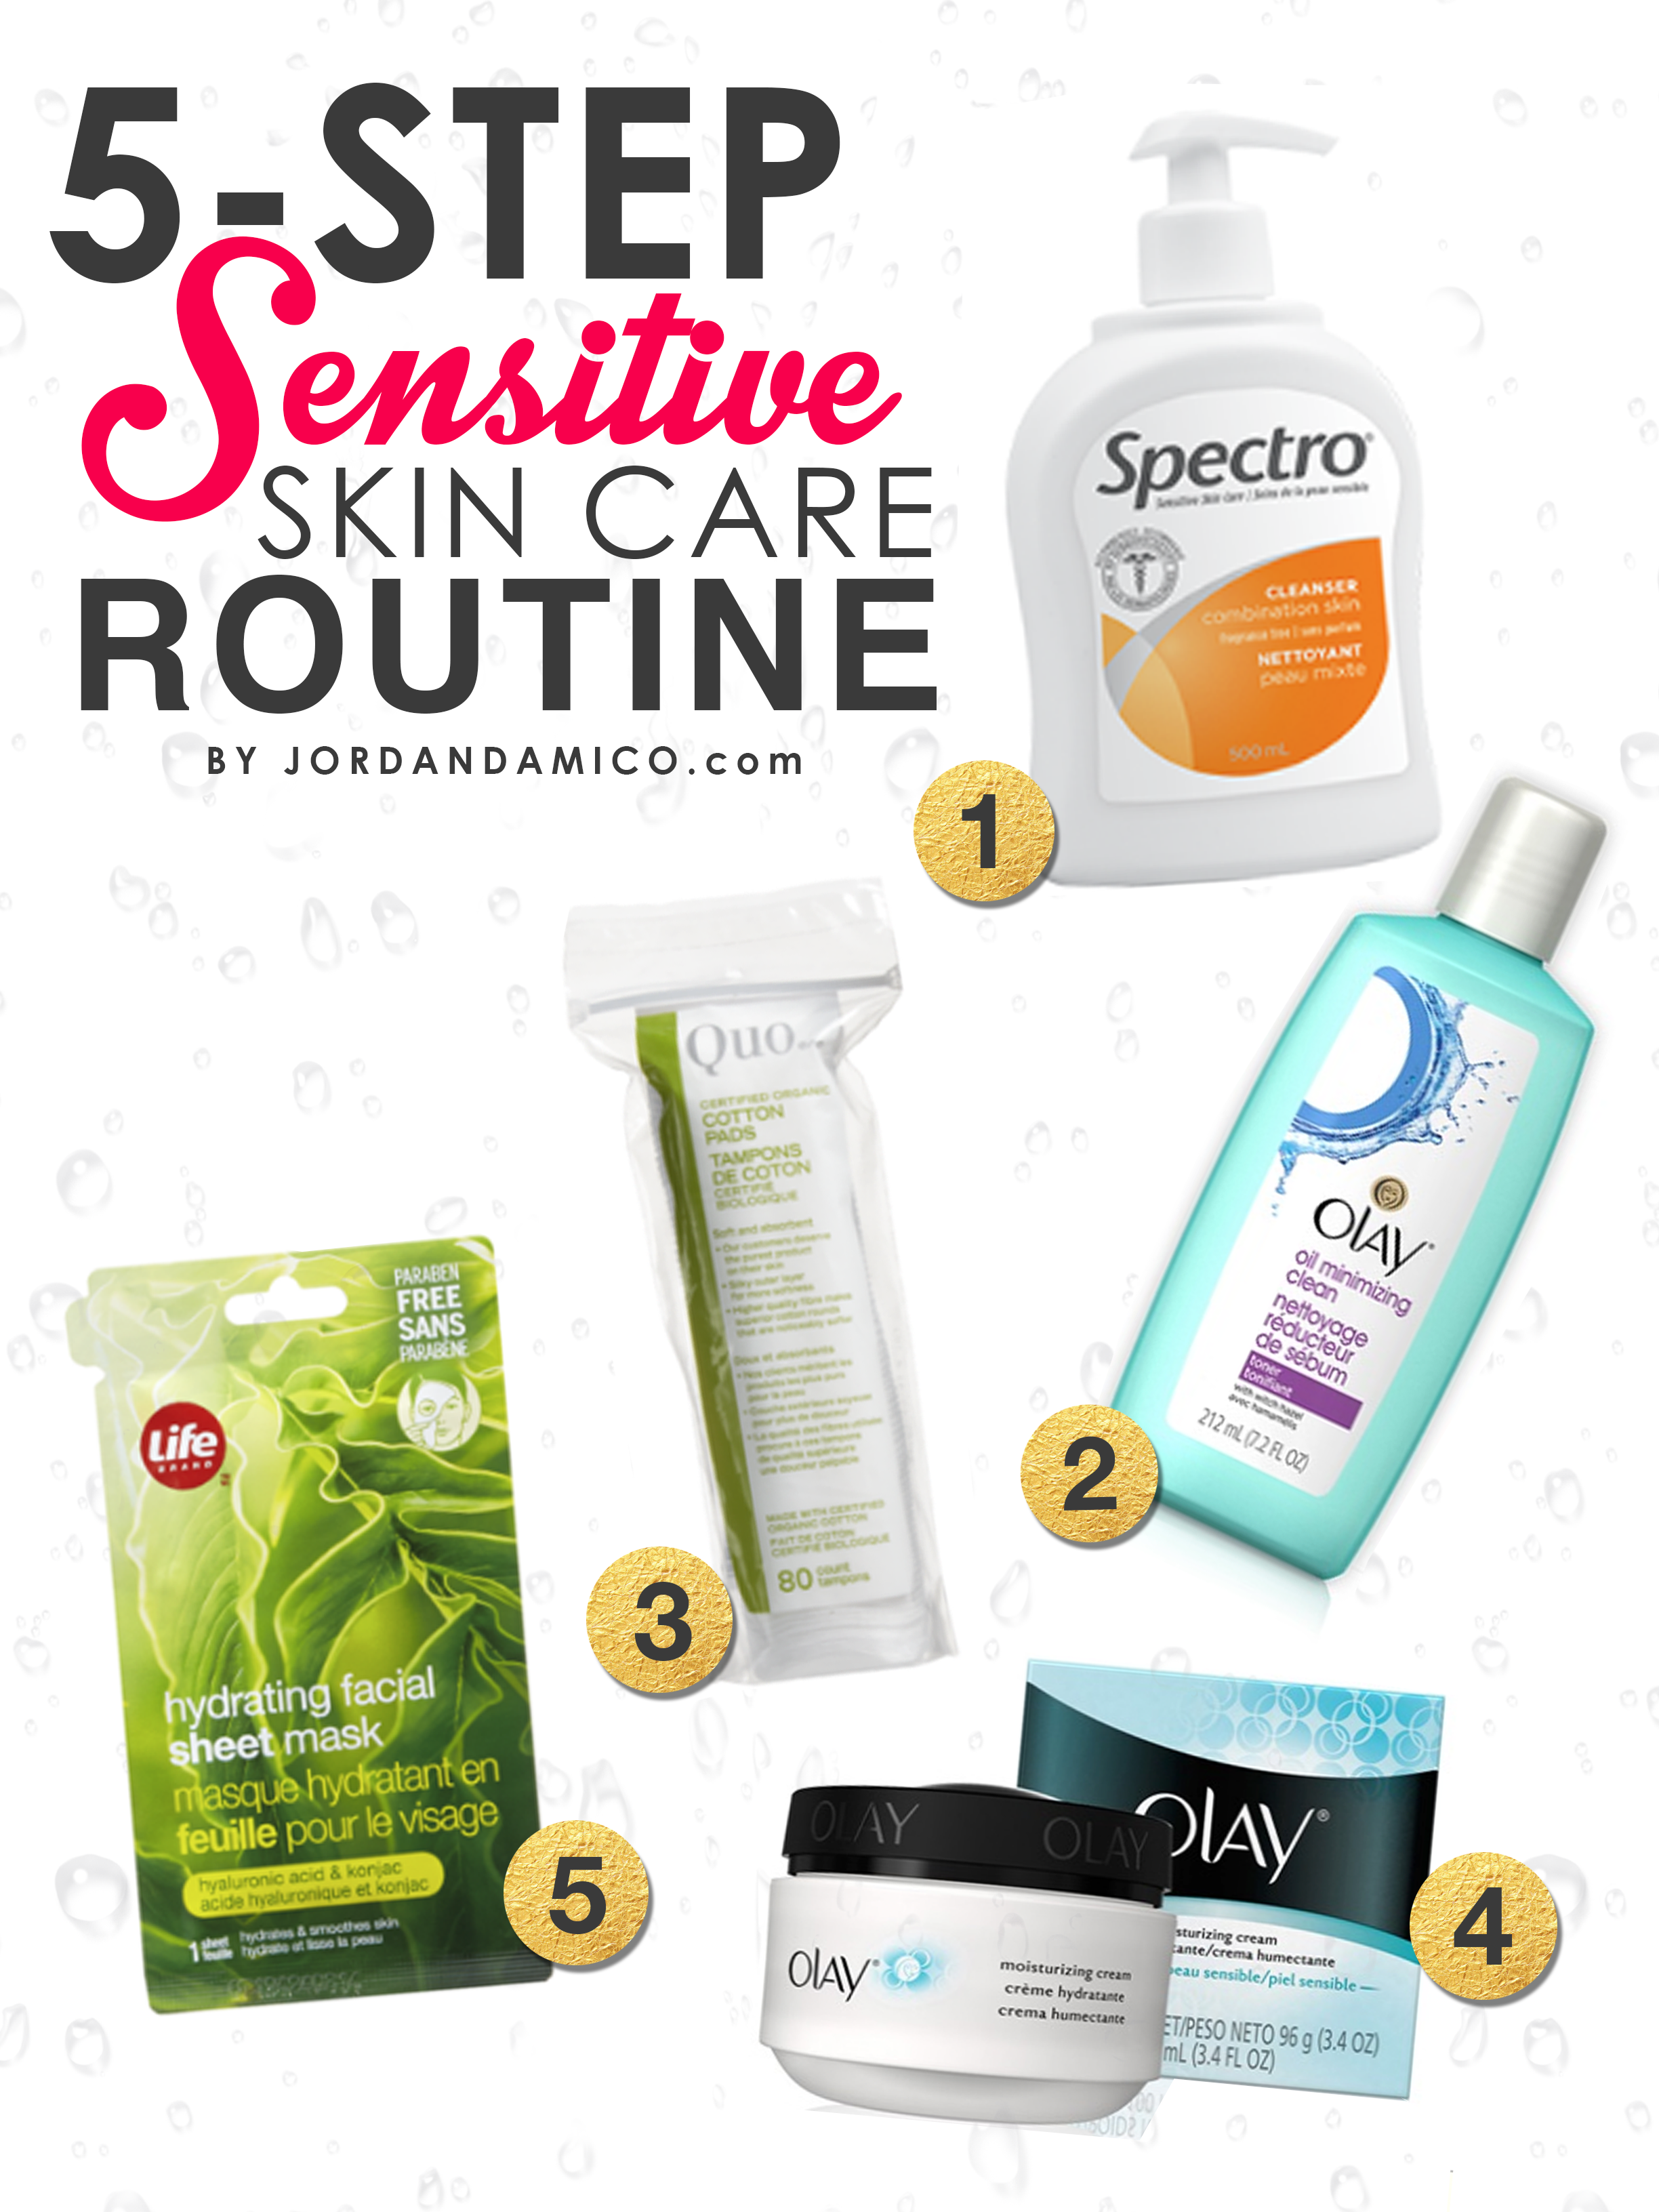 5 Step Sensitive Skin Care Routine